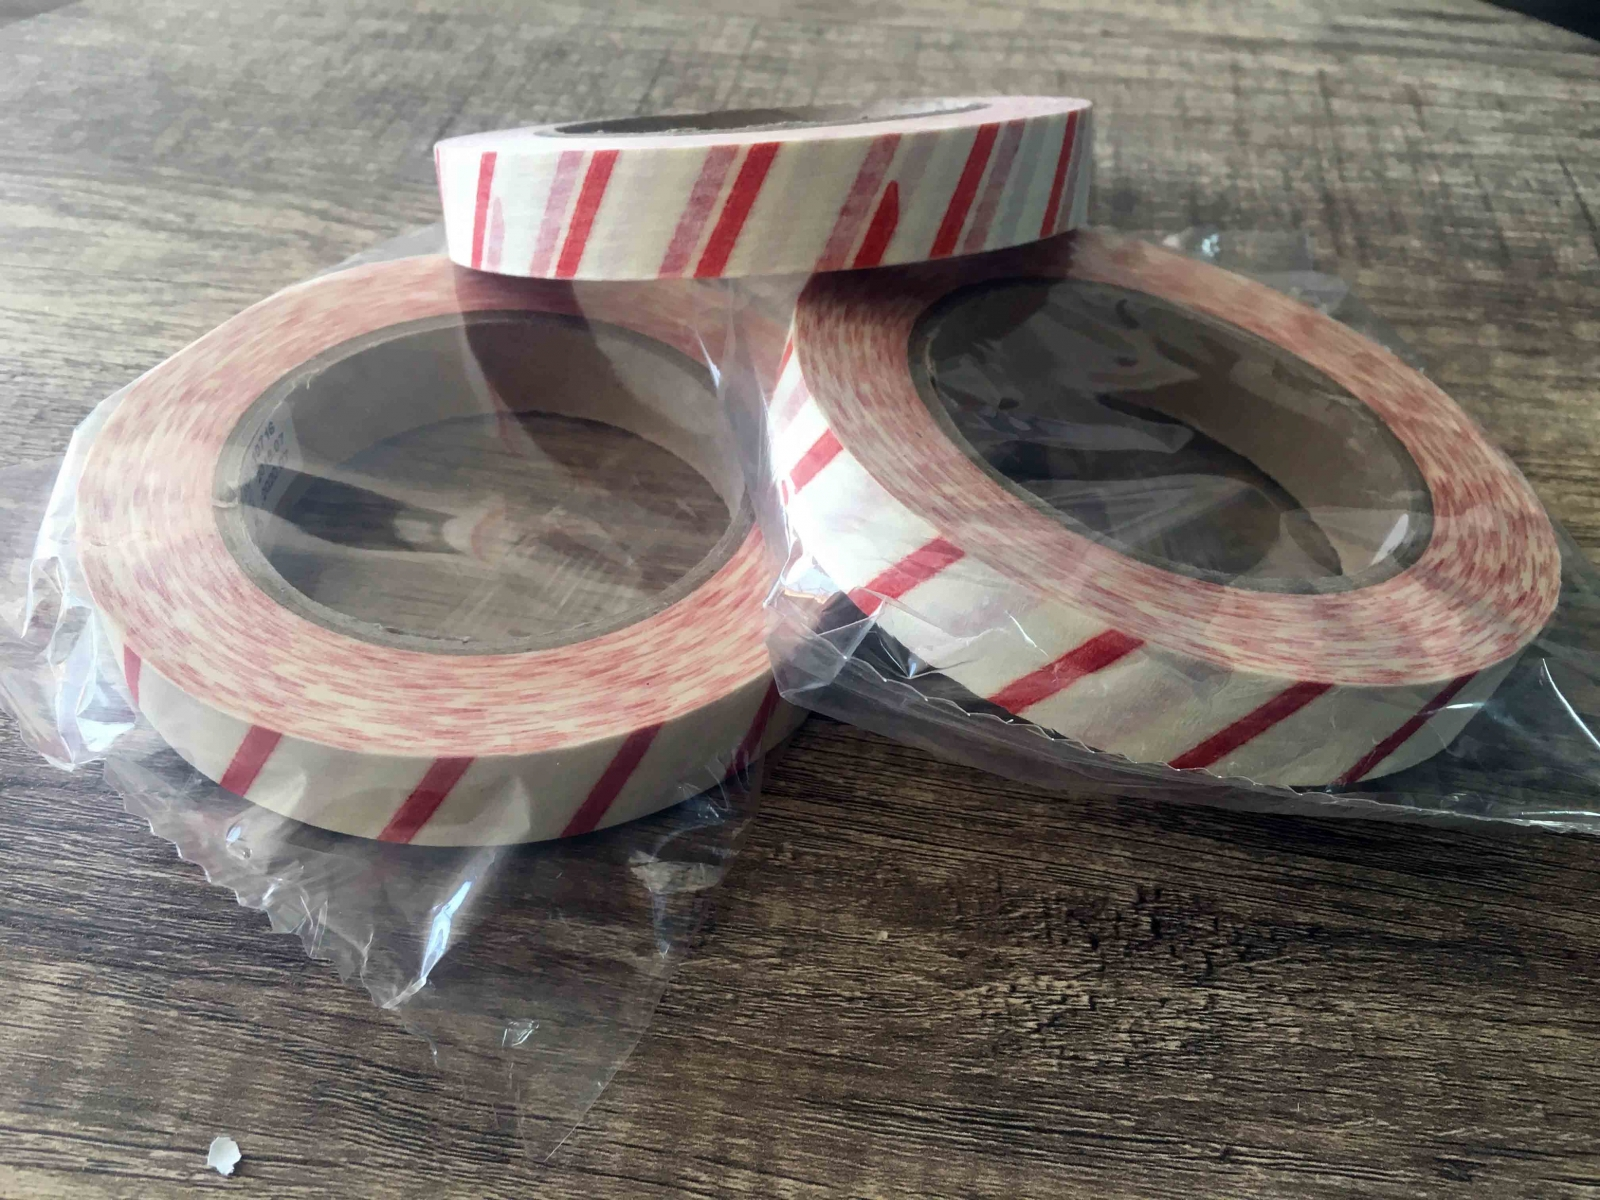 STERILIZATION ETHYLENE OXIDE (ETO) TAPE